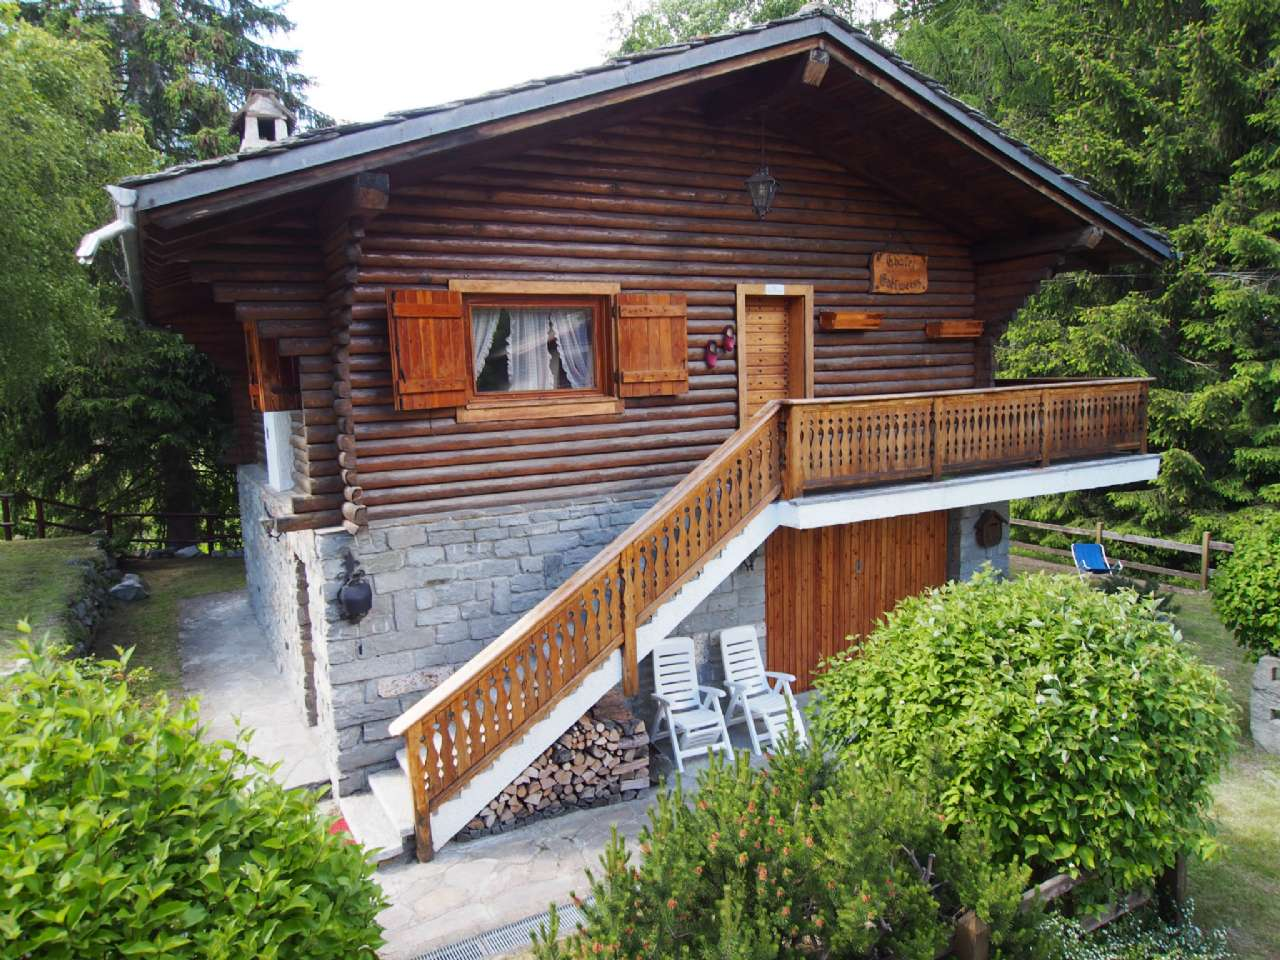 Villa Unifamiliare in Vendita a Gressoney-Saint-Jean